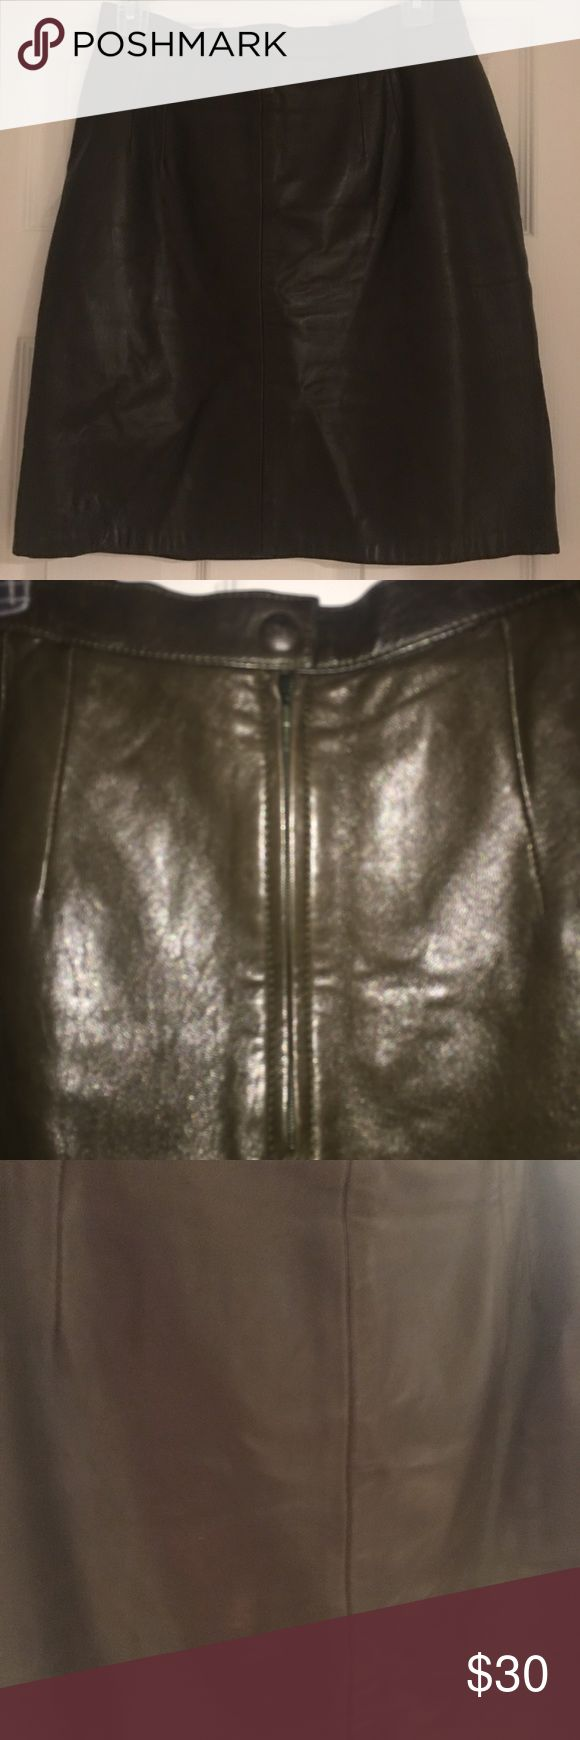 Chocolate Brown Vintage Leather Mini Skirt Some minor signs of wear from hanger. See picture and note leather folds near waist and some minor scratches in same area. Super soft leather!! Measurements: W: 14.5 across flat, L: 19. Open to reasonable offers. Skirts Mini